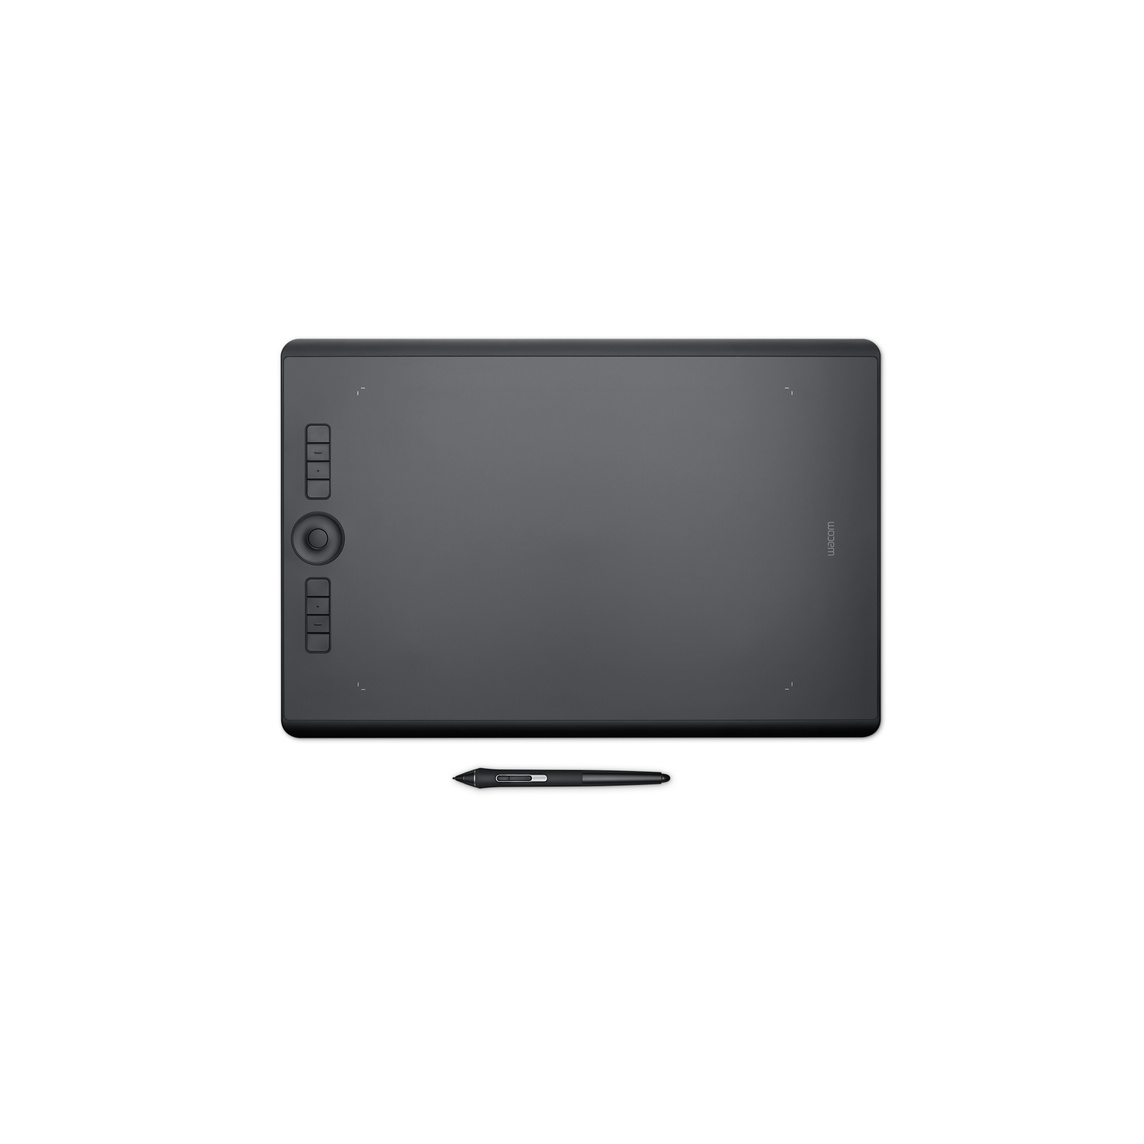 Wacom Intuos Pro Graphic Drawing Tablet - Large